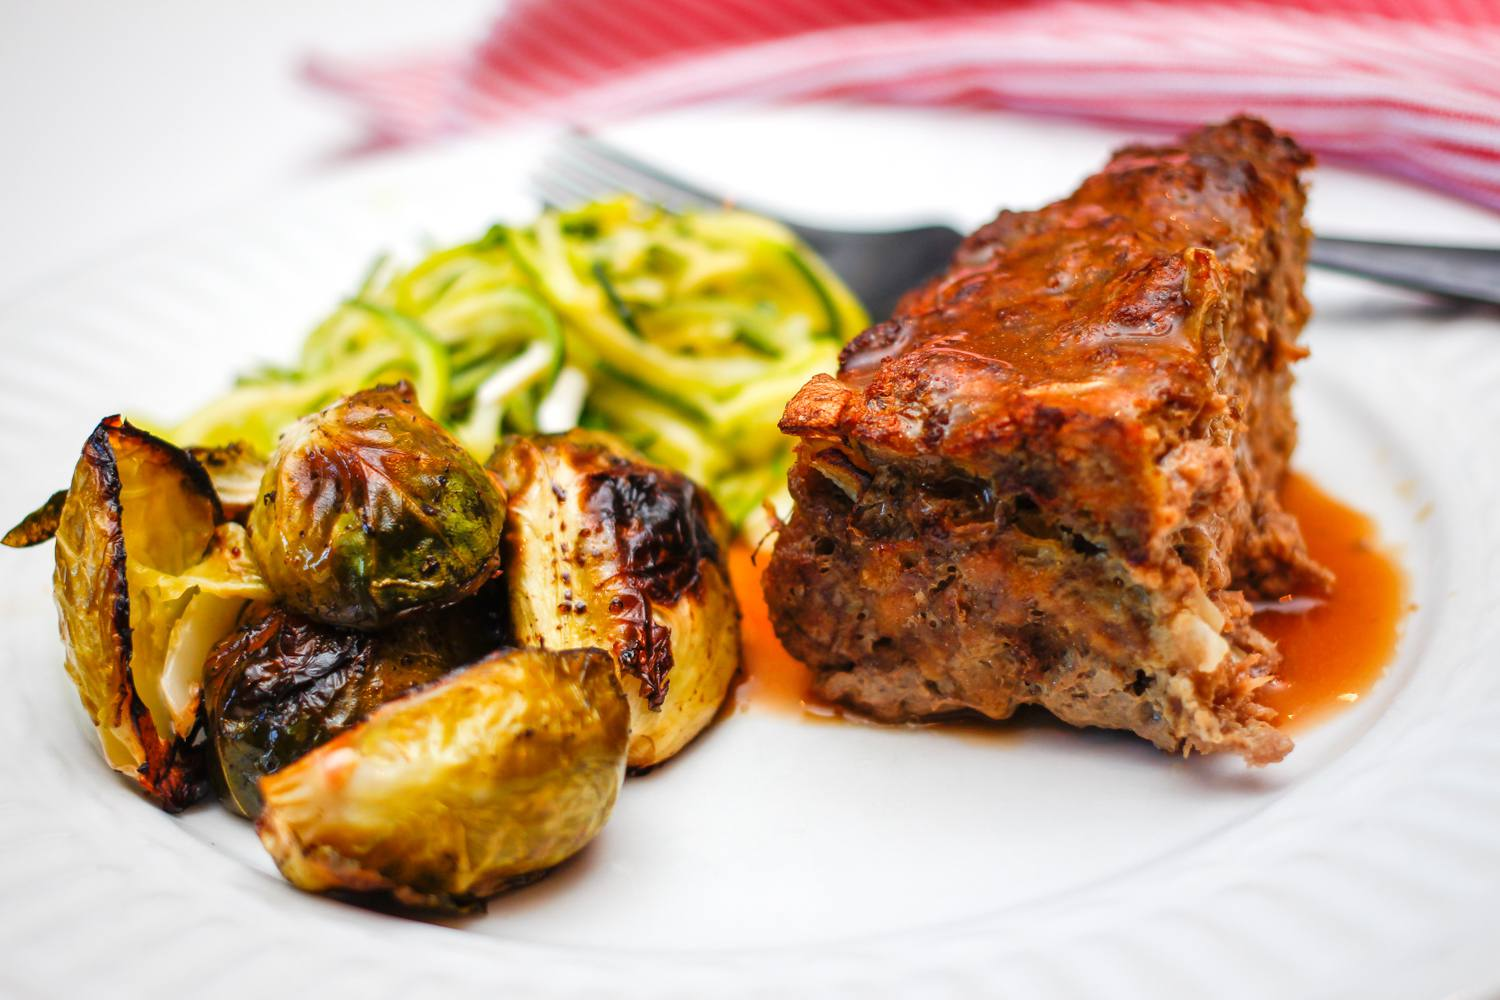 Meatloaf With Gravy and Brussels sprouts